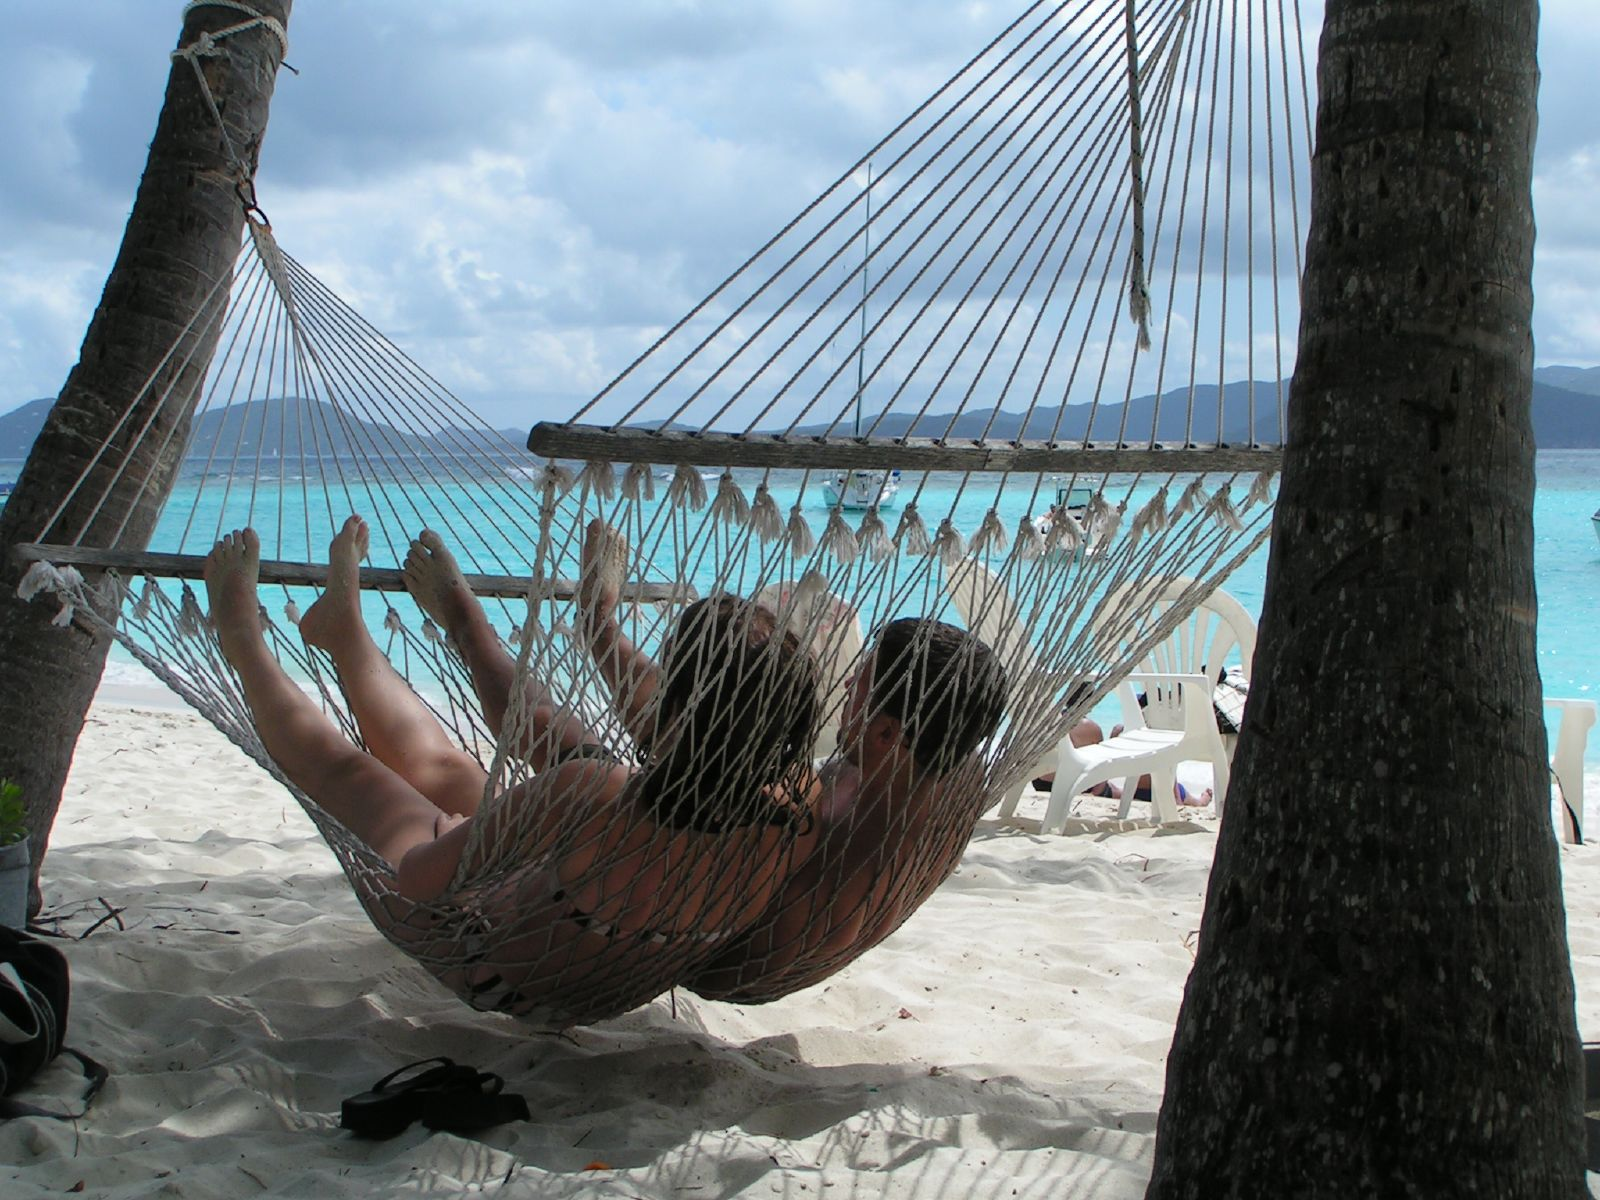 A couple in a hammock on the beach